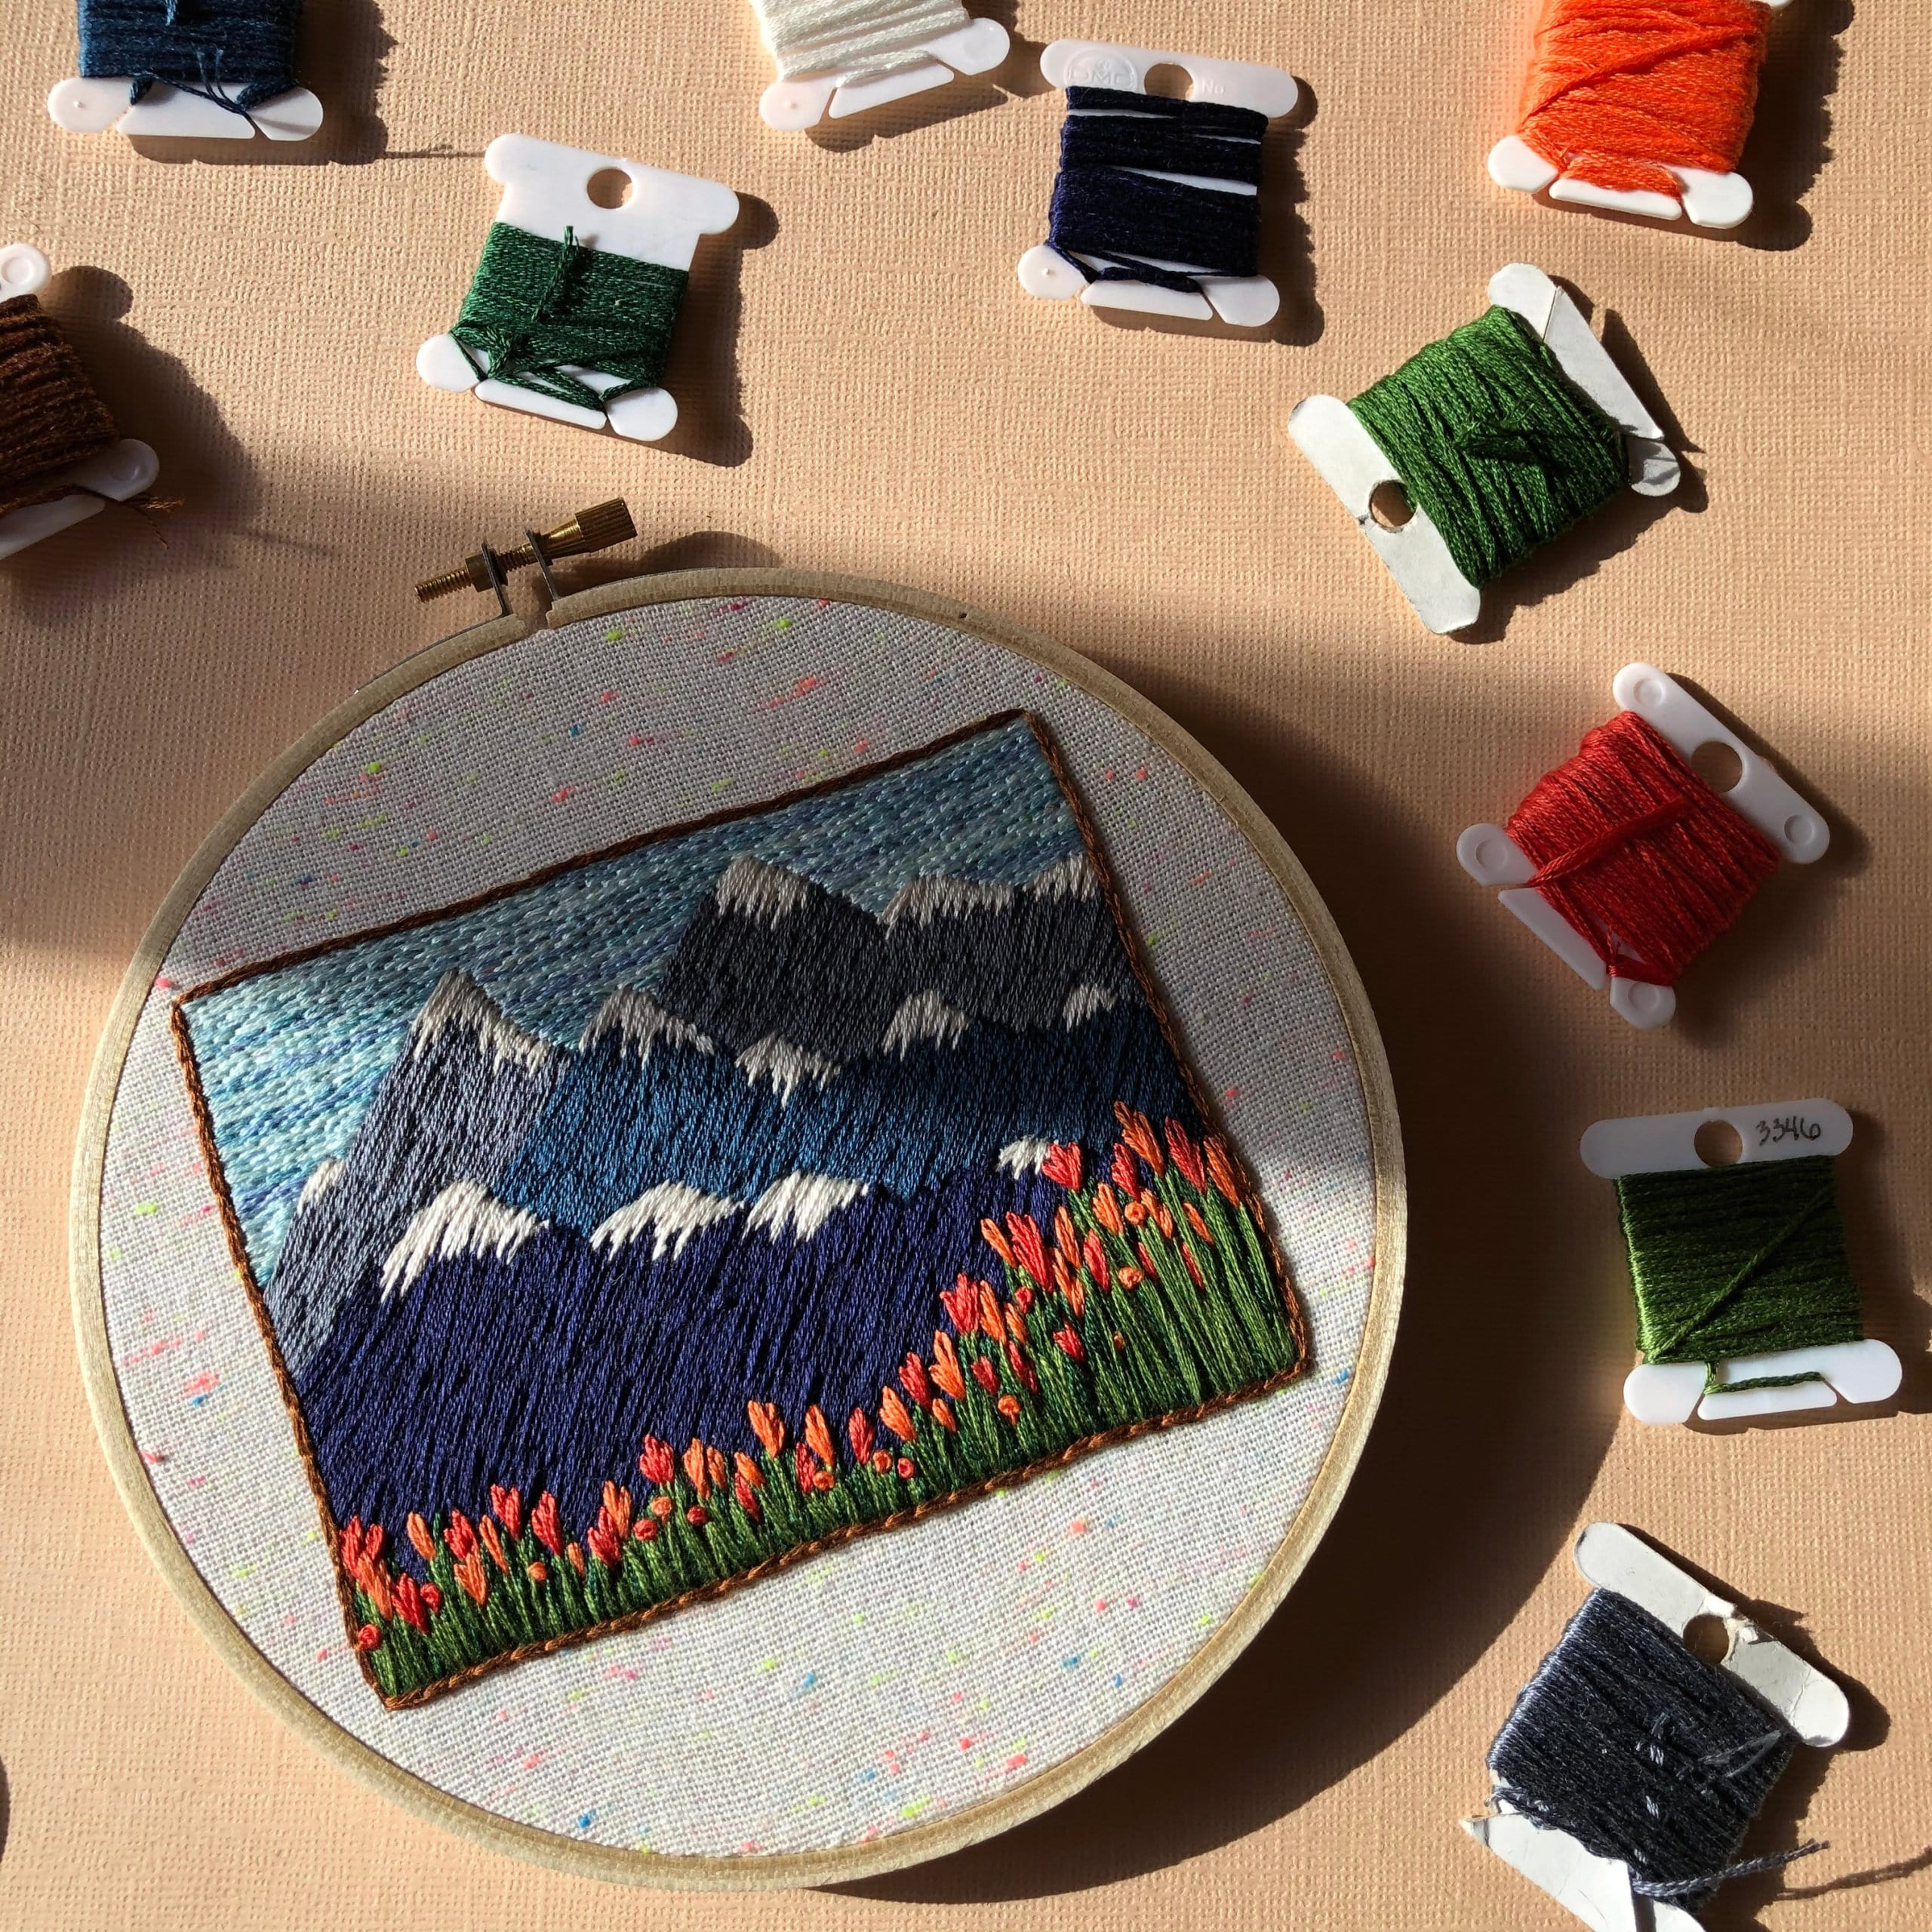 Mountain & Tulip Landscape Embroidery Kit